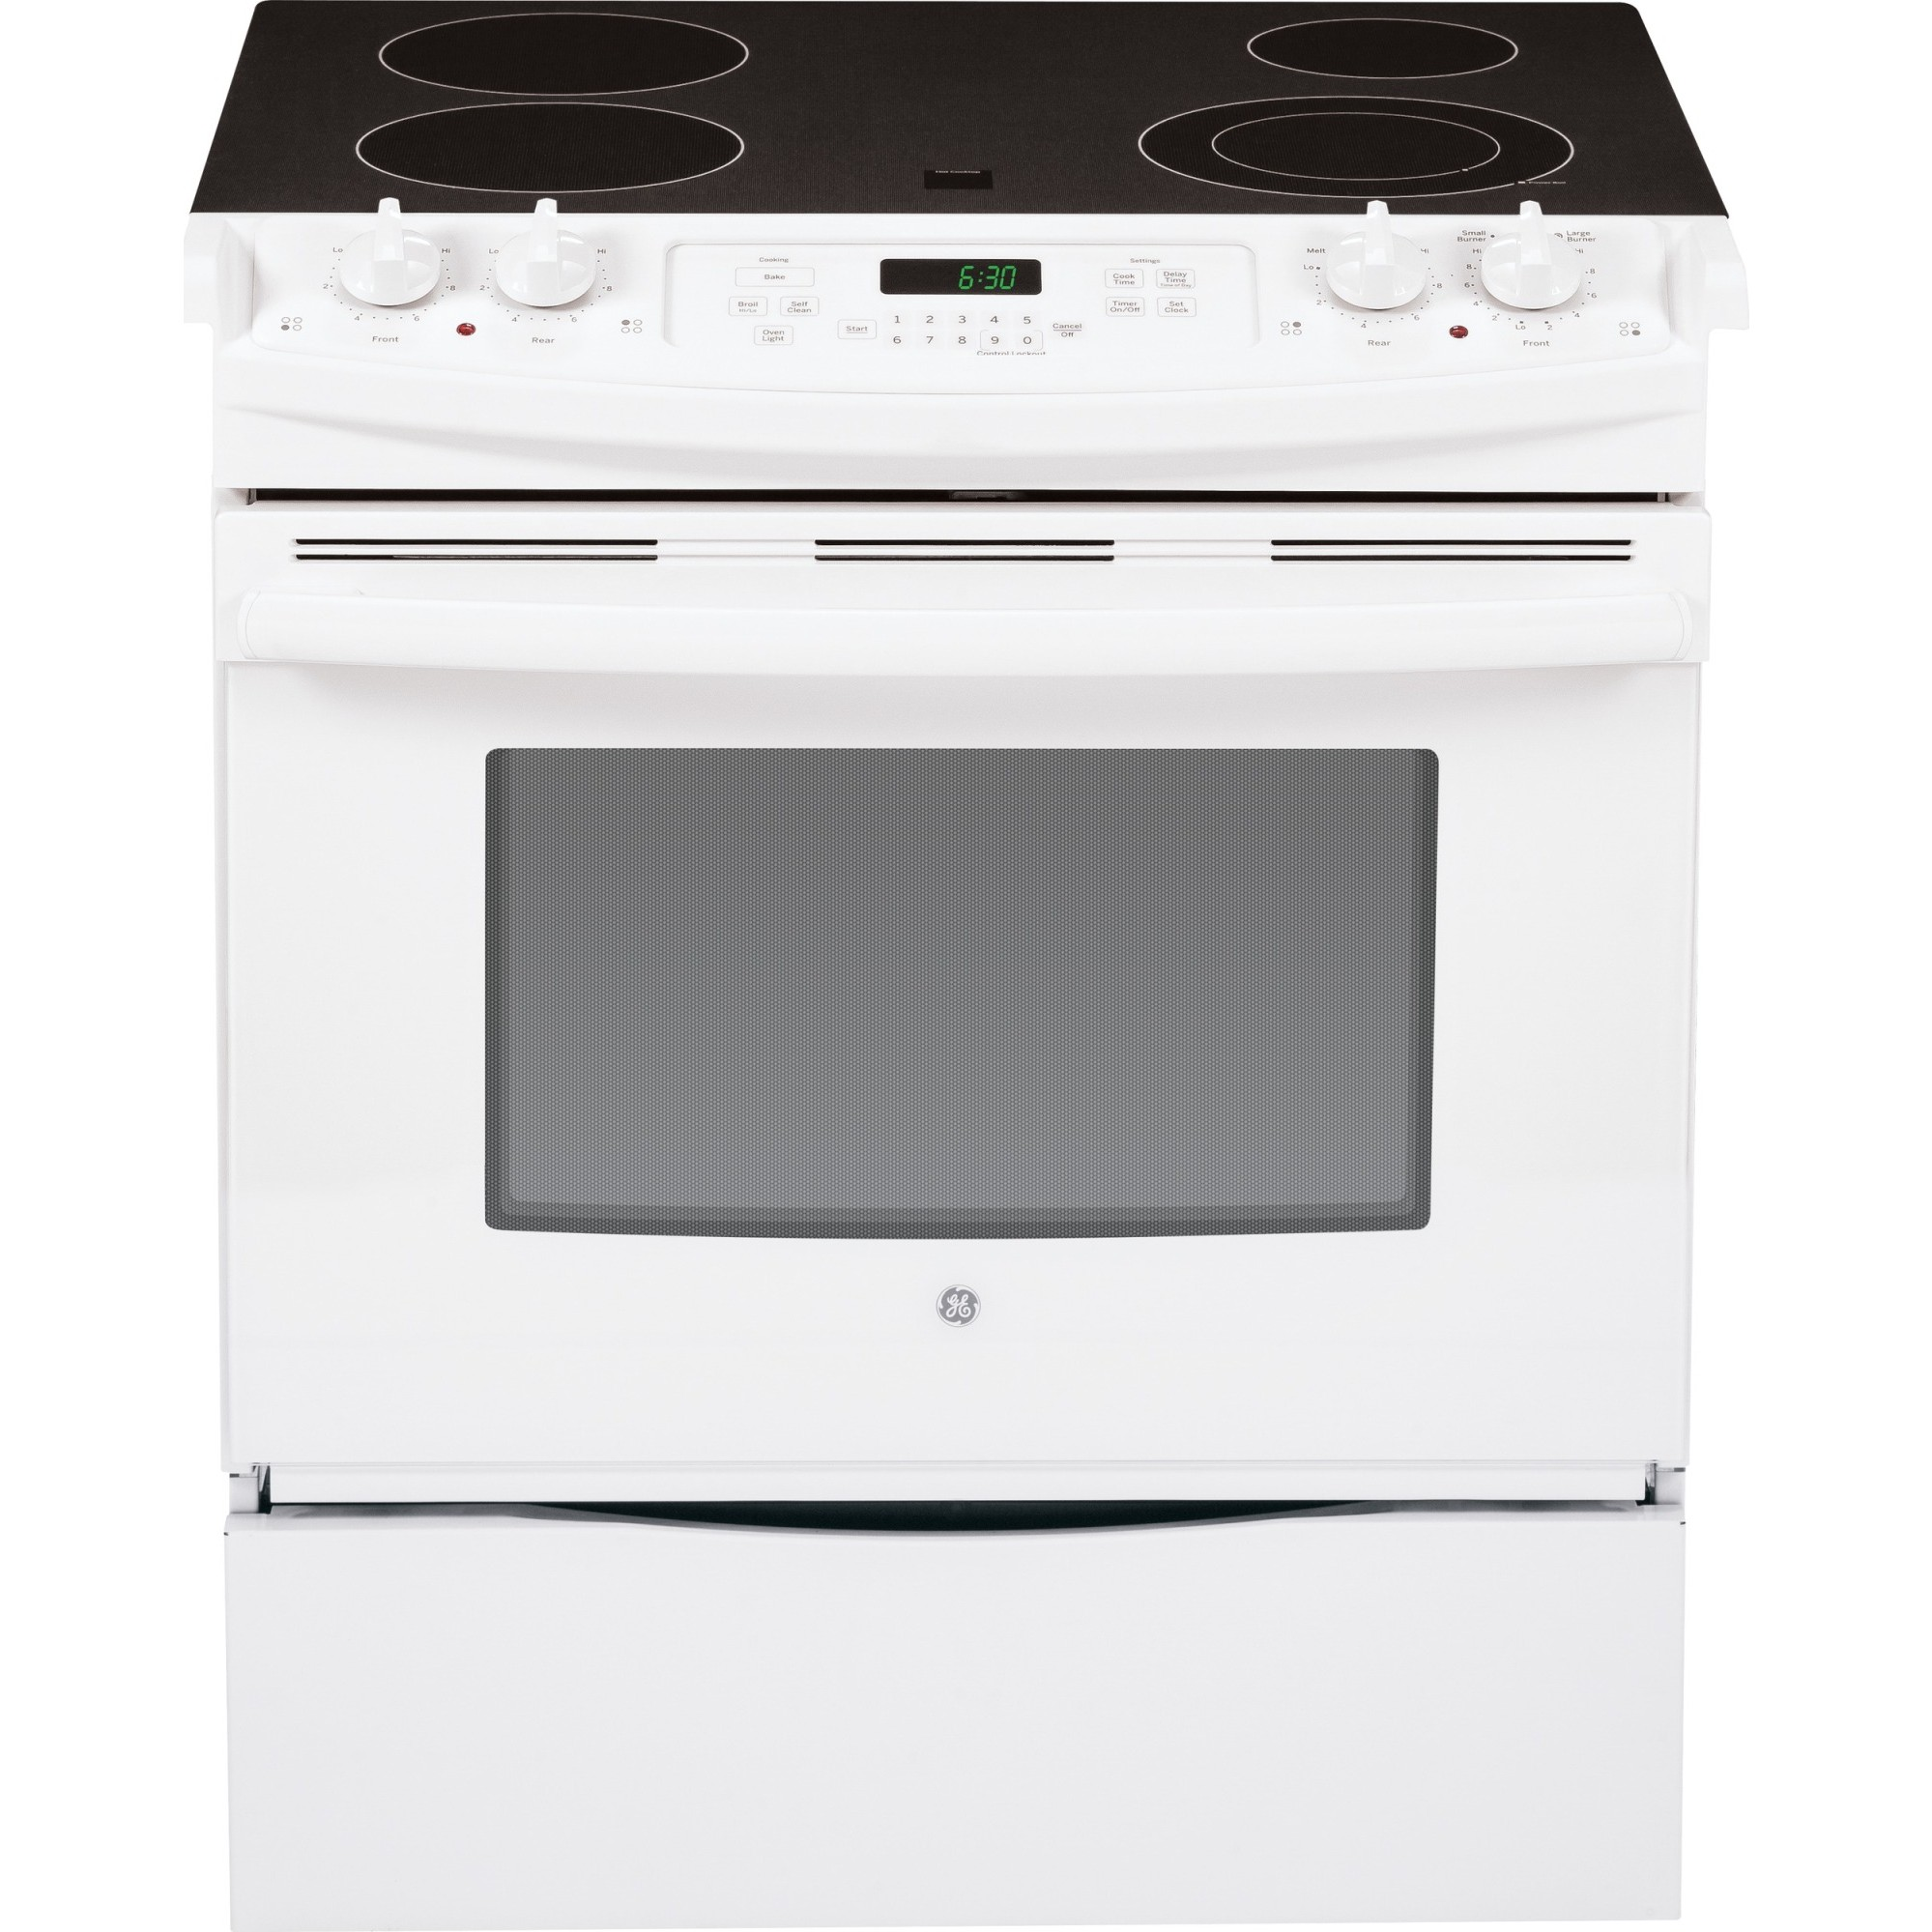 Js630dfww Ge 30 Quot Slide In Front Control Electric Range